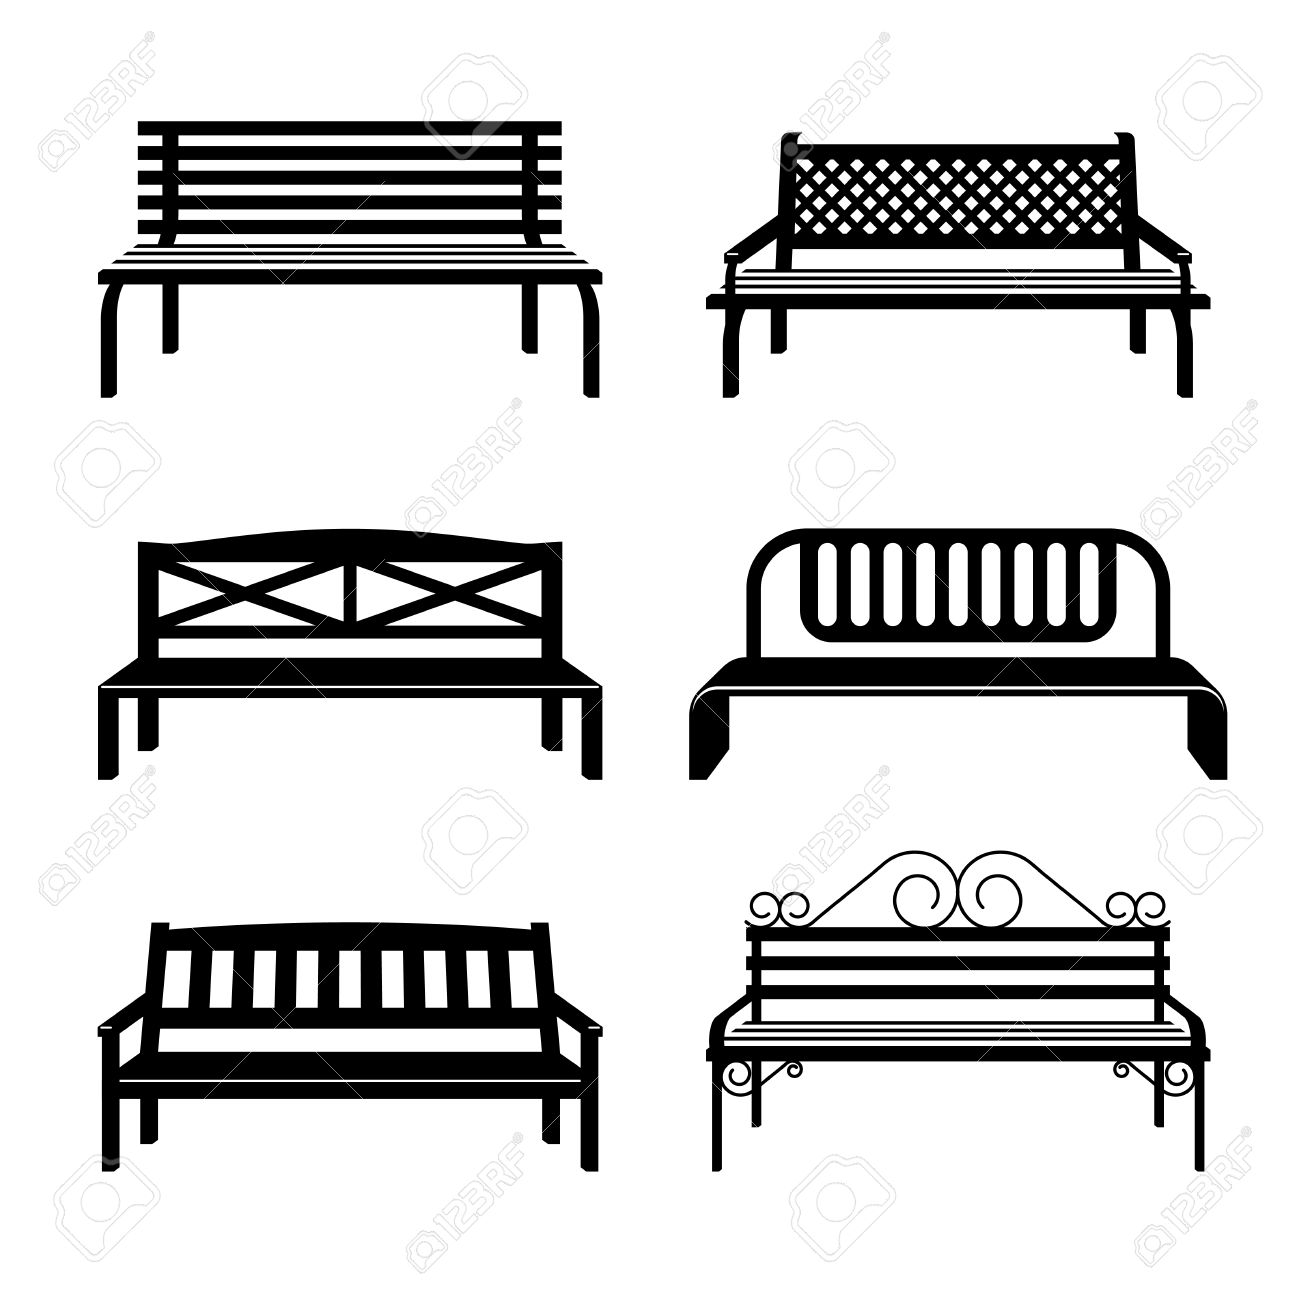 Black Bench Vector Benches Benches Black Silhouettes Bench Street For City